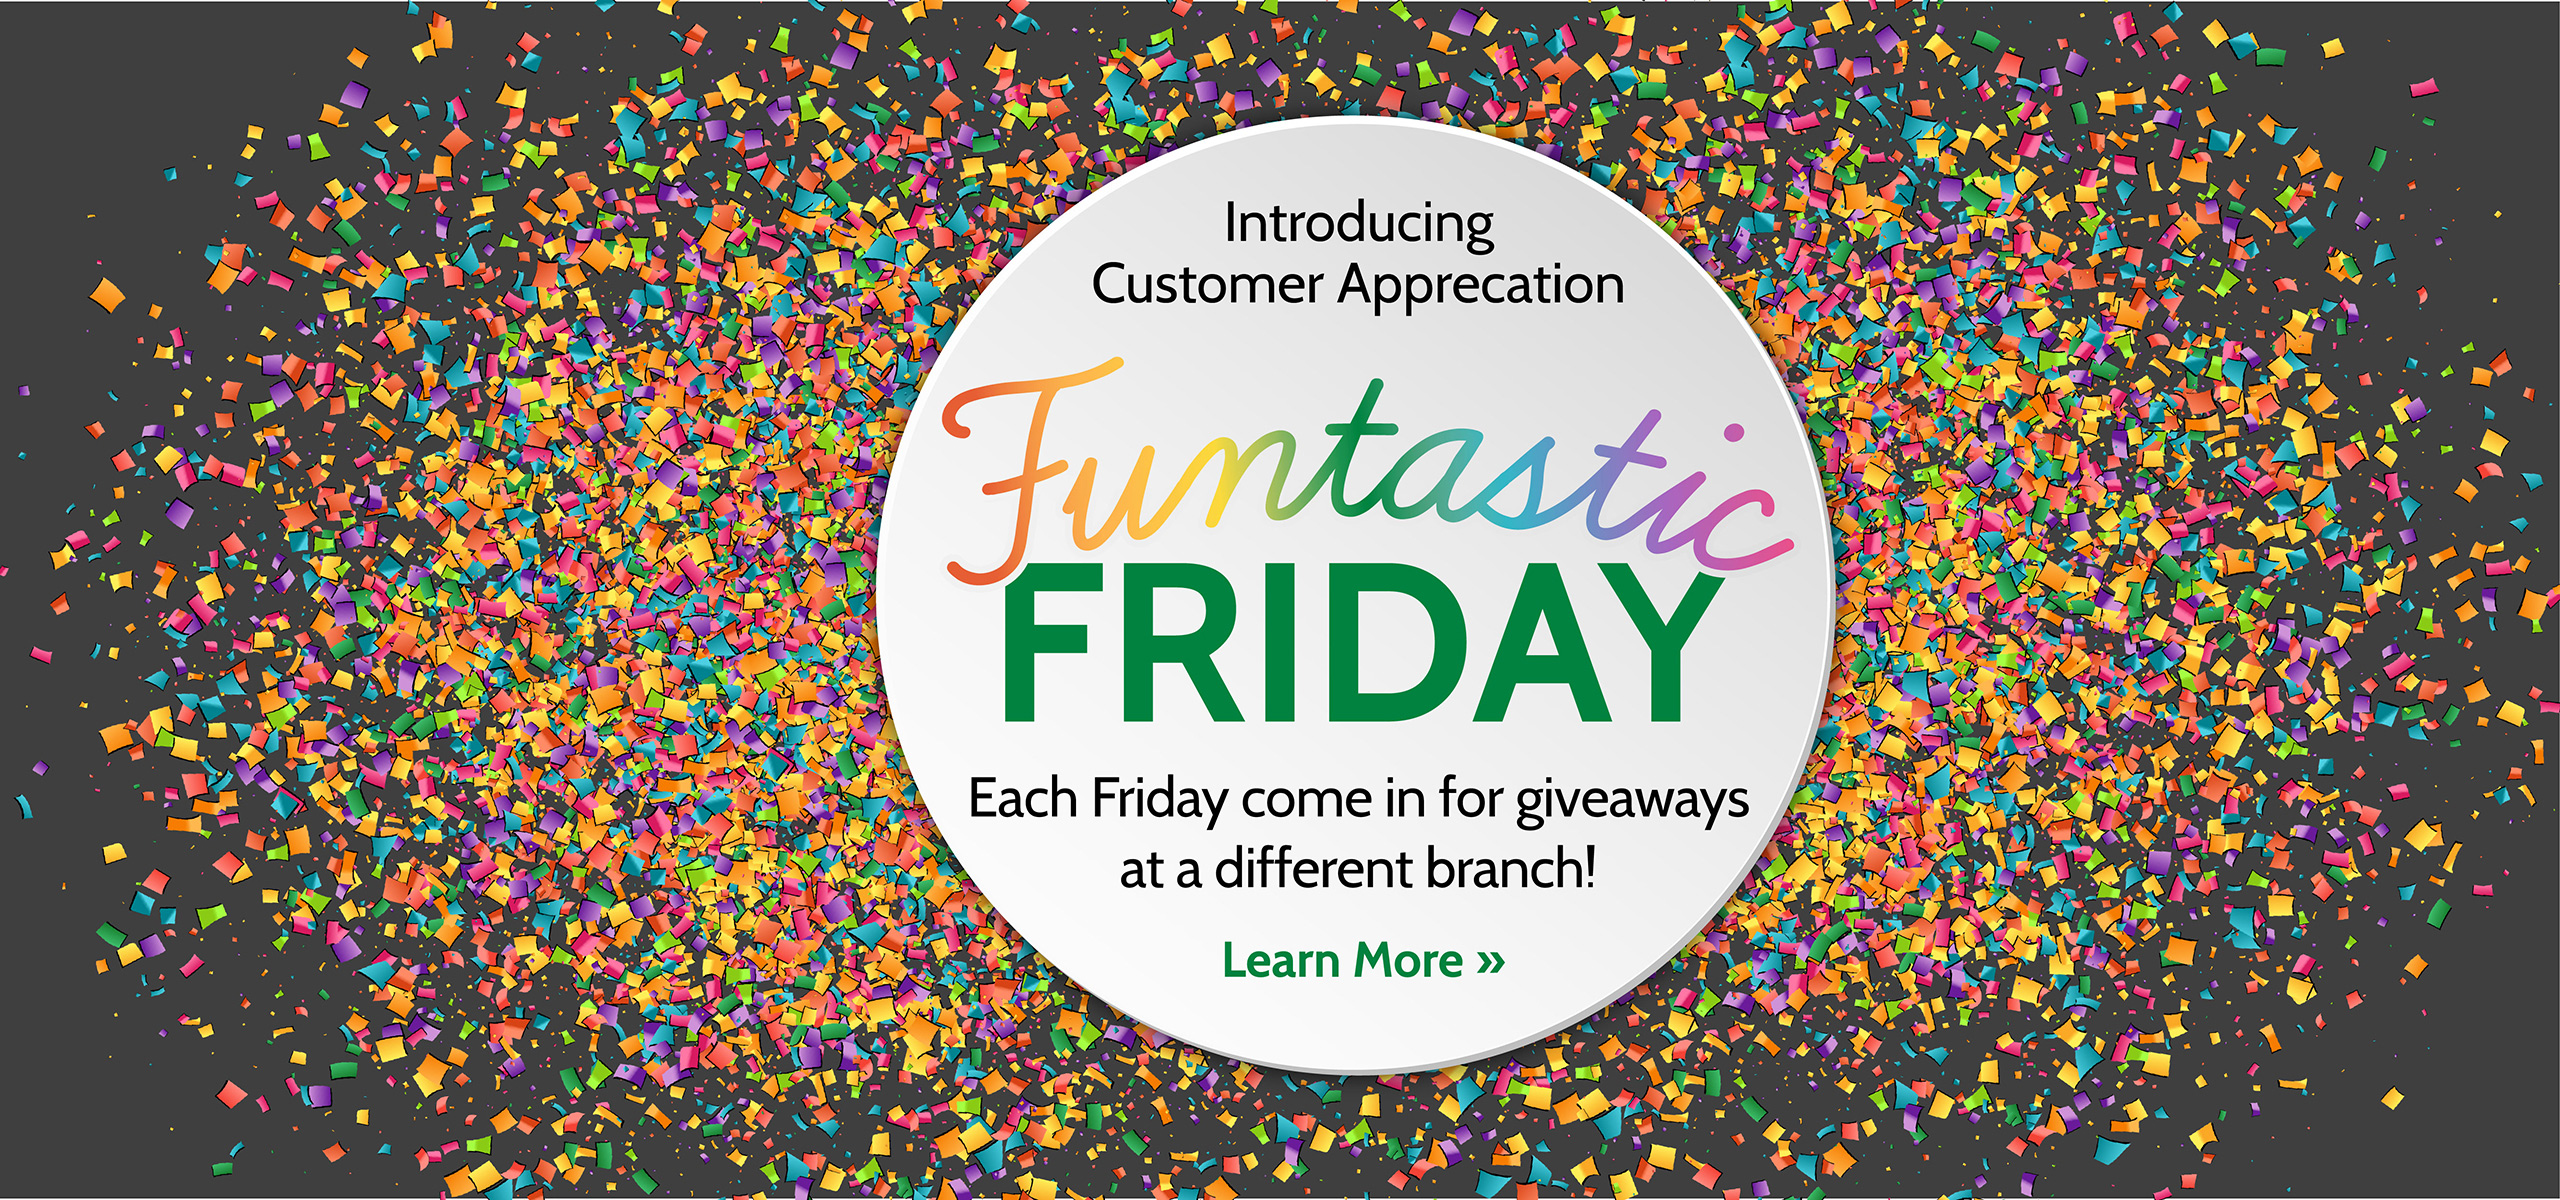 Introducing Customer Appreciation Funtastic Friday - each Friday come in for giveways at a different branch! Click here to learn more.